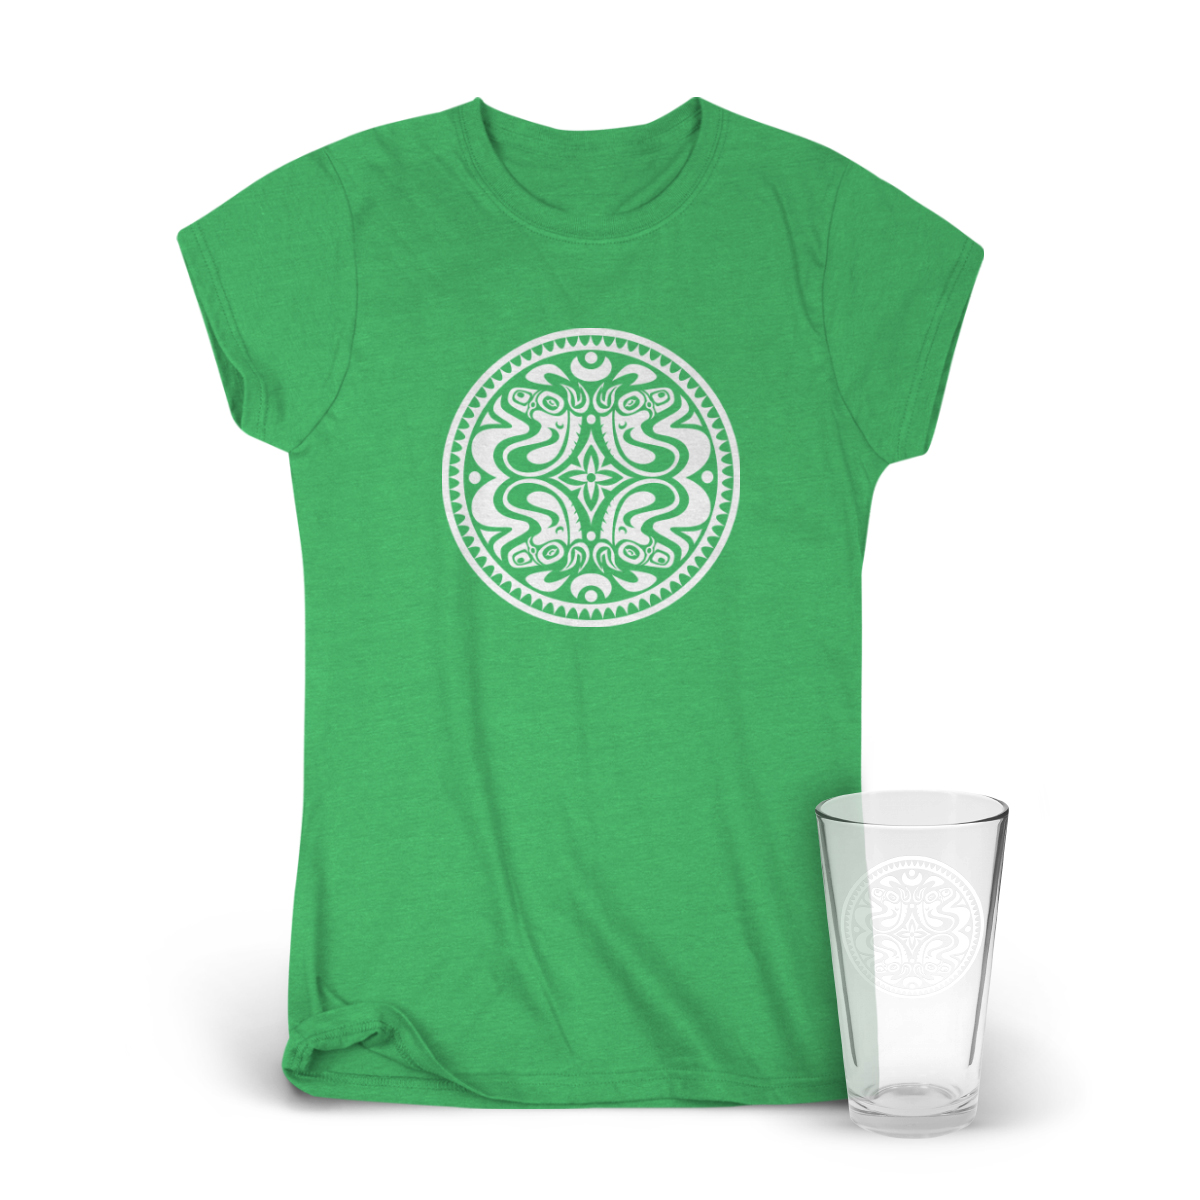 Classic Dose Logo Women's T-Shirt & Pint Glass Bundle